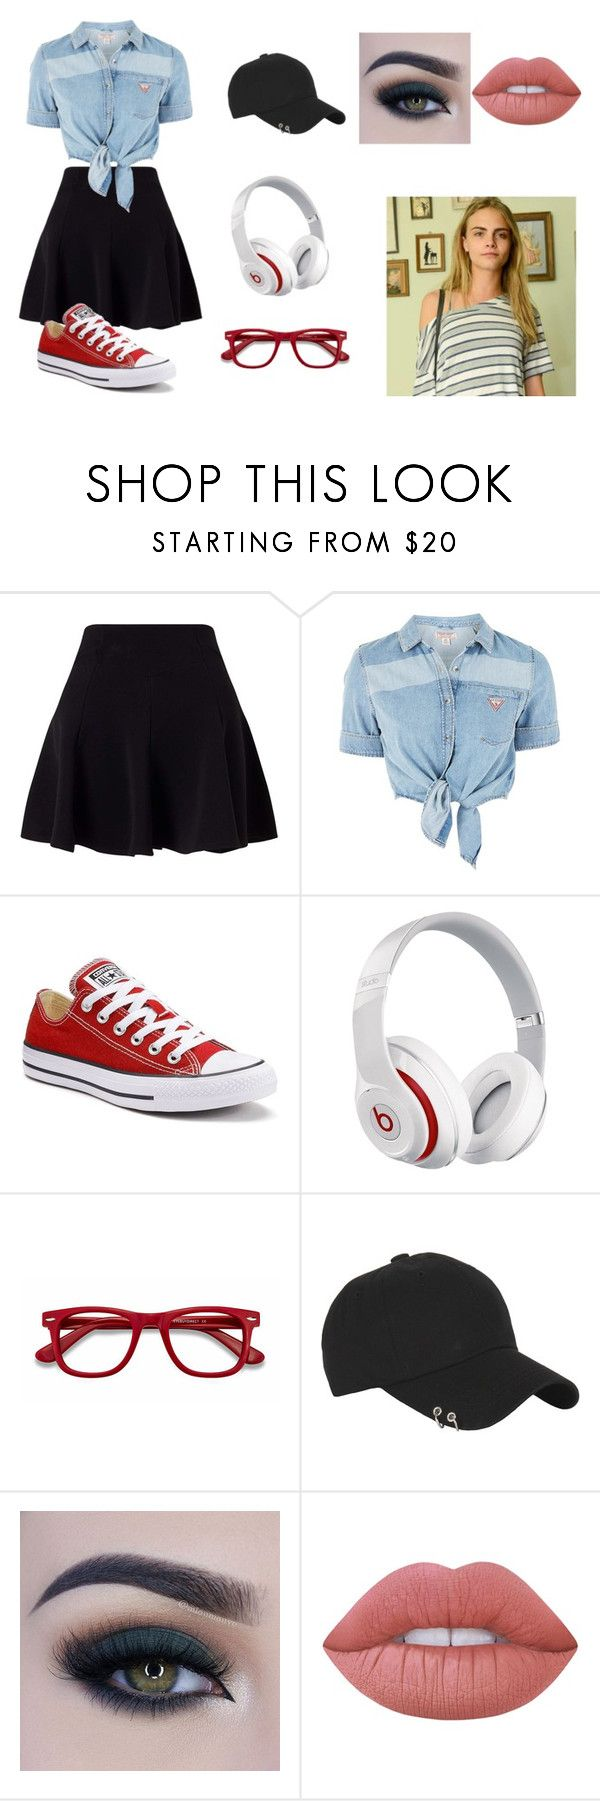 """""""5"""" by jojochan28 on Polyvore featuring moda, Miss Selfridge, Topshop, Converse, Beats by Dr. Dre, EyeBuyDirect.com, Burberry, Too Faced Cosmetics y Lime Crime"""